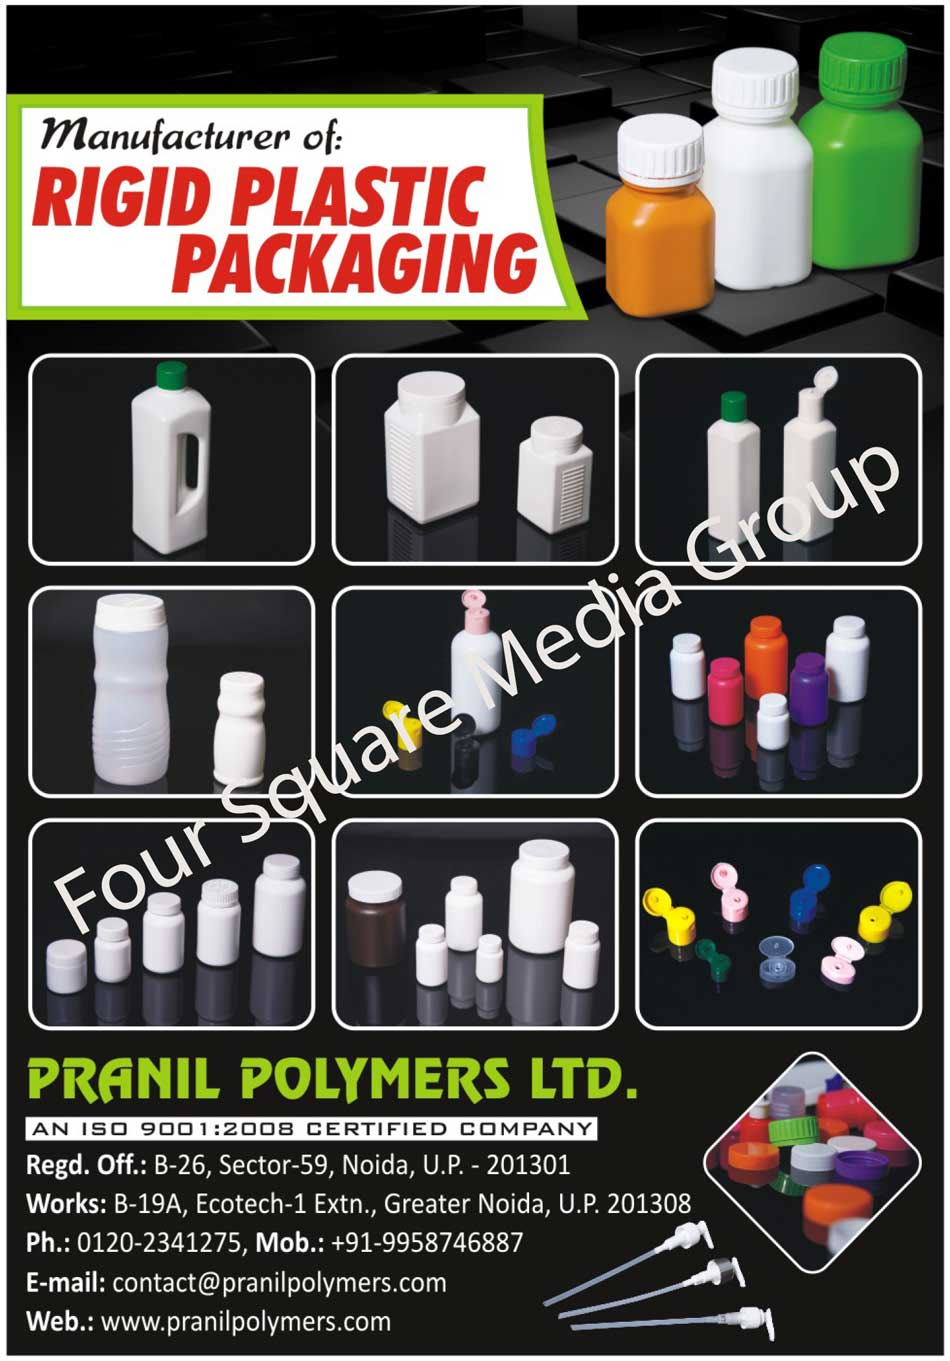 Rigid Plastic Packagings, Household Container, Household Bottle, Consumer Product Container, Consumer Product Bottle, Medicine Container, Medicine Bottle, Pharmaceutical Container, Pharmaceutical Bottle, Cosmetic Product Container, Cosmetic Product Bottle, Consumer Care Product Container, Consumer Care Product Bottle, Food Bottle, Beverage Bottle, Food Container, Beverage Container, Herbal Product Container, Herbal Product Bottle, Motor Oil Container, Lubricant Container, Industrial Product Container, Custom Bottle